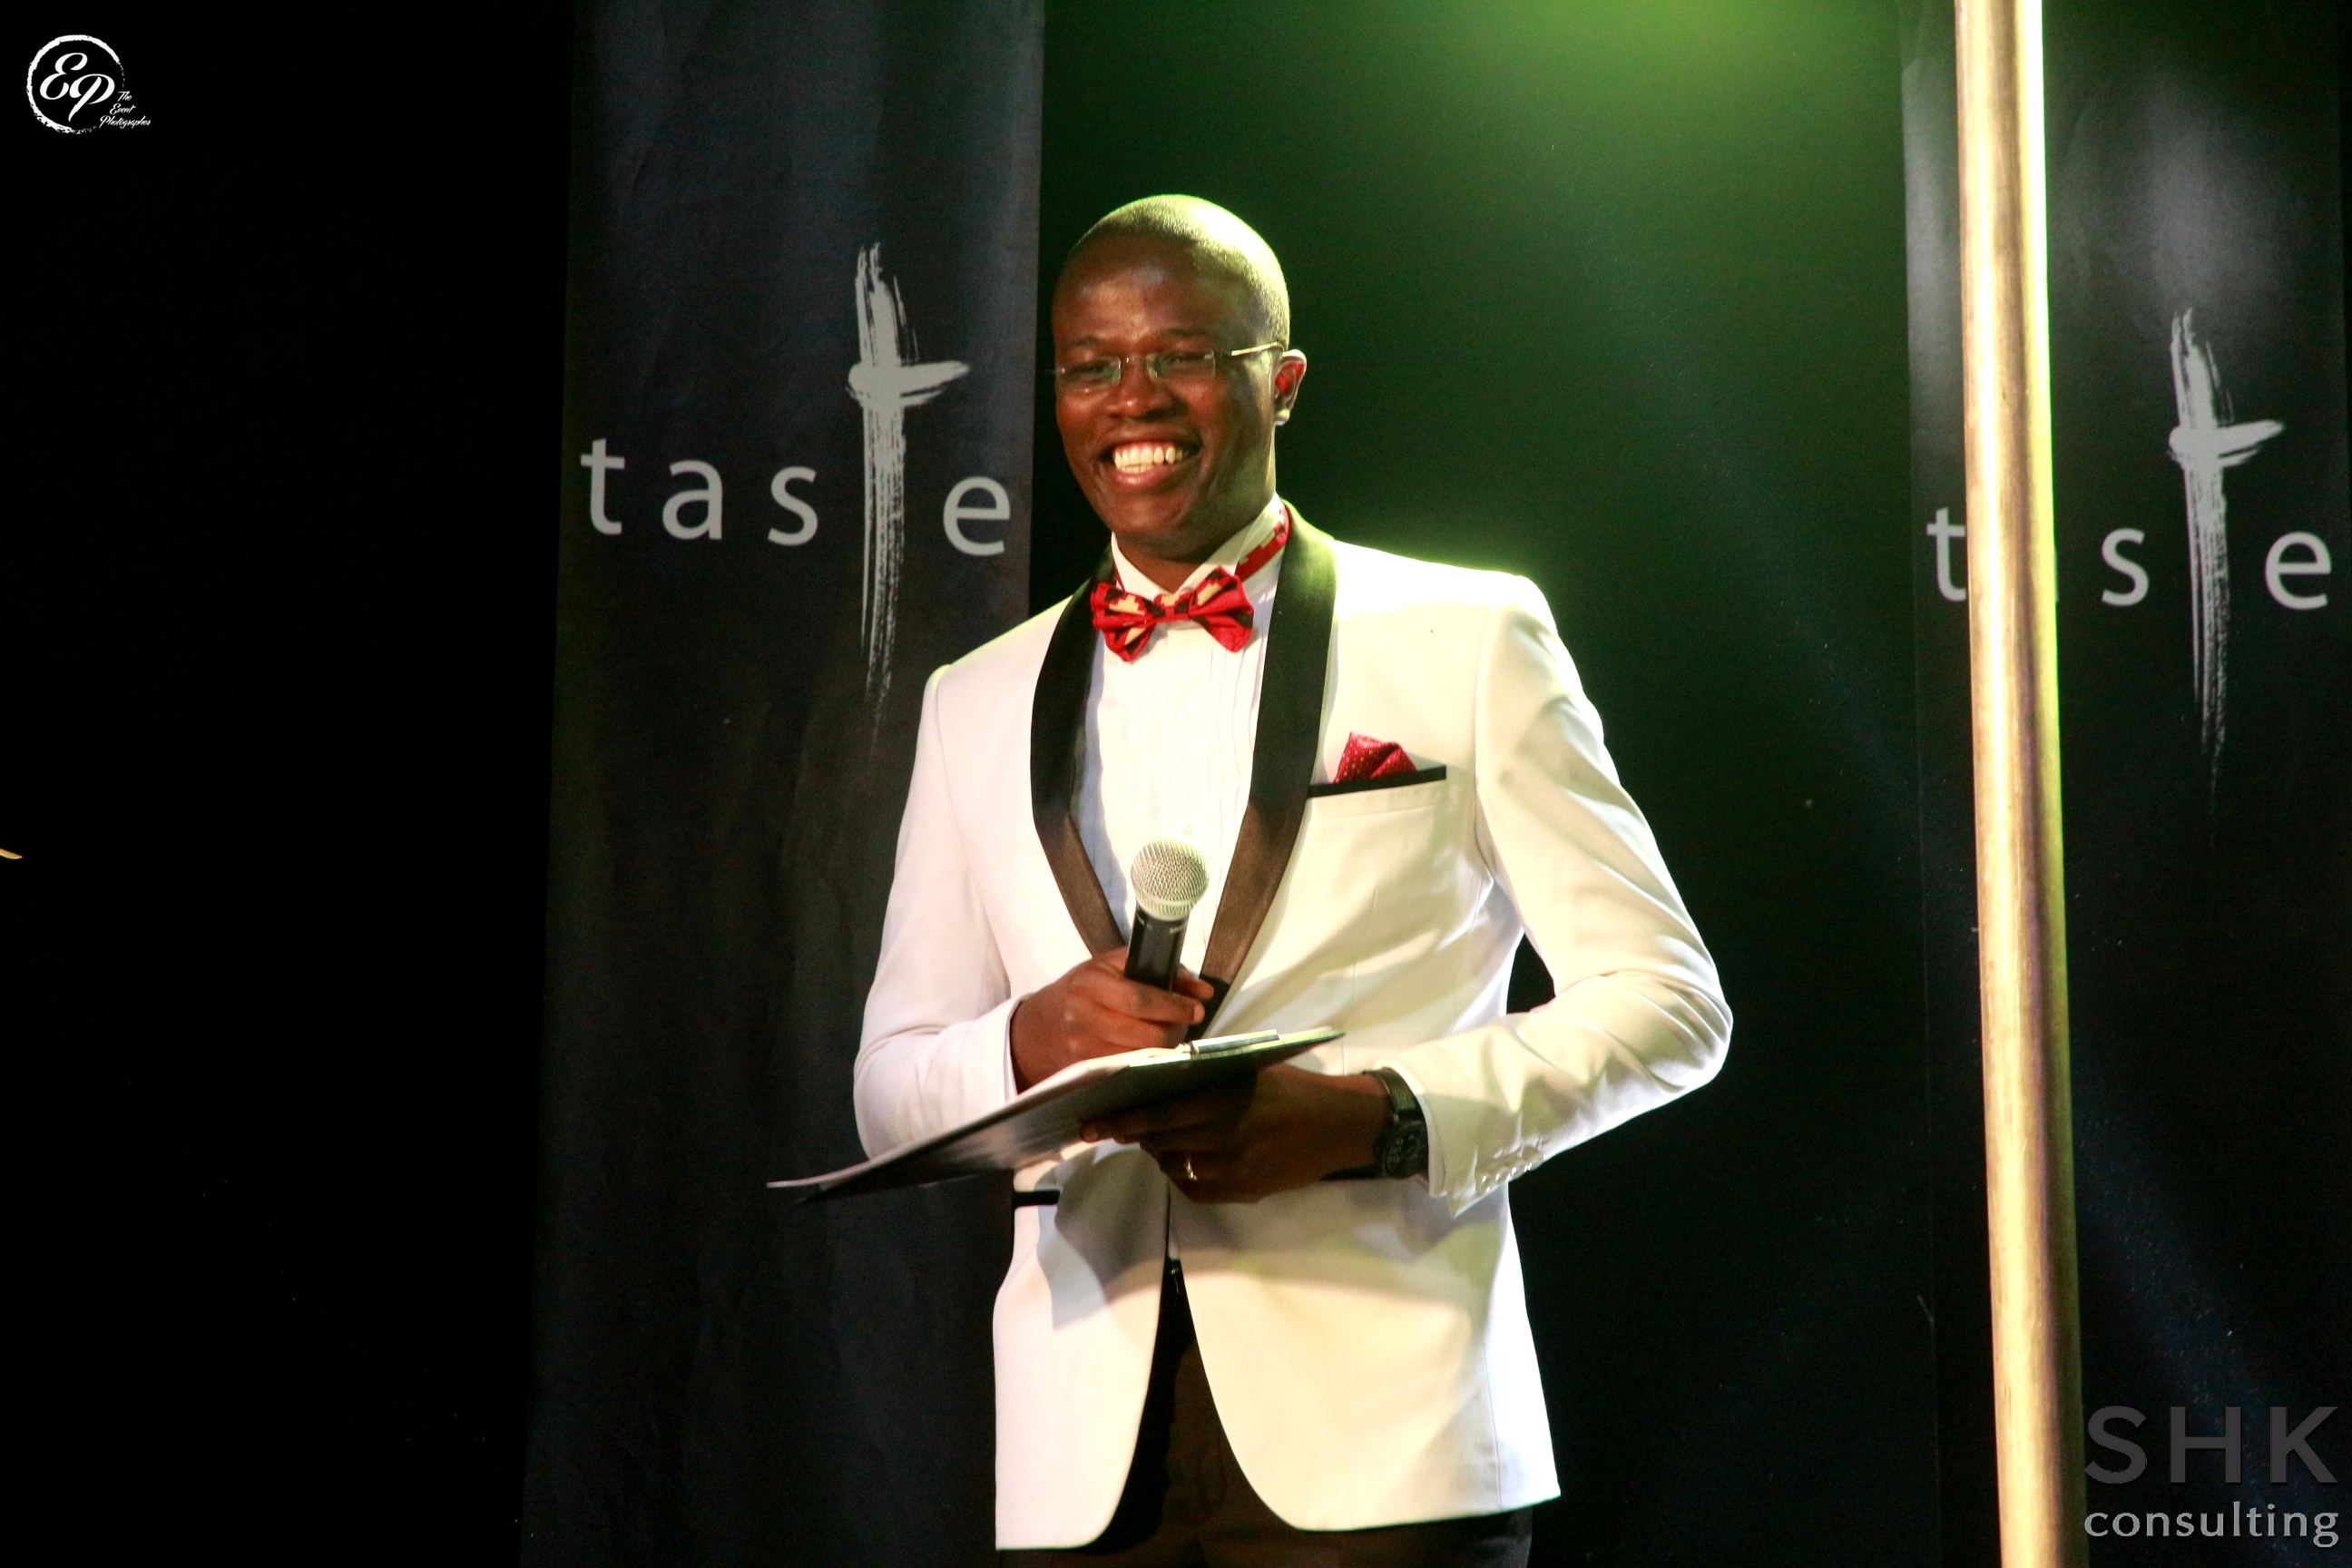 Host For The BAKE Awards, BAKE Awards, #BAKEAwards, Bonney Tunya, CNBC Africa